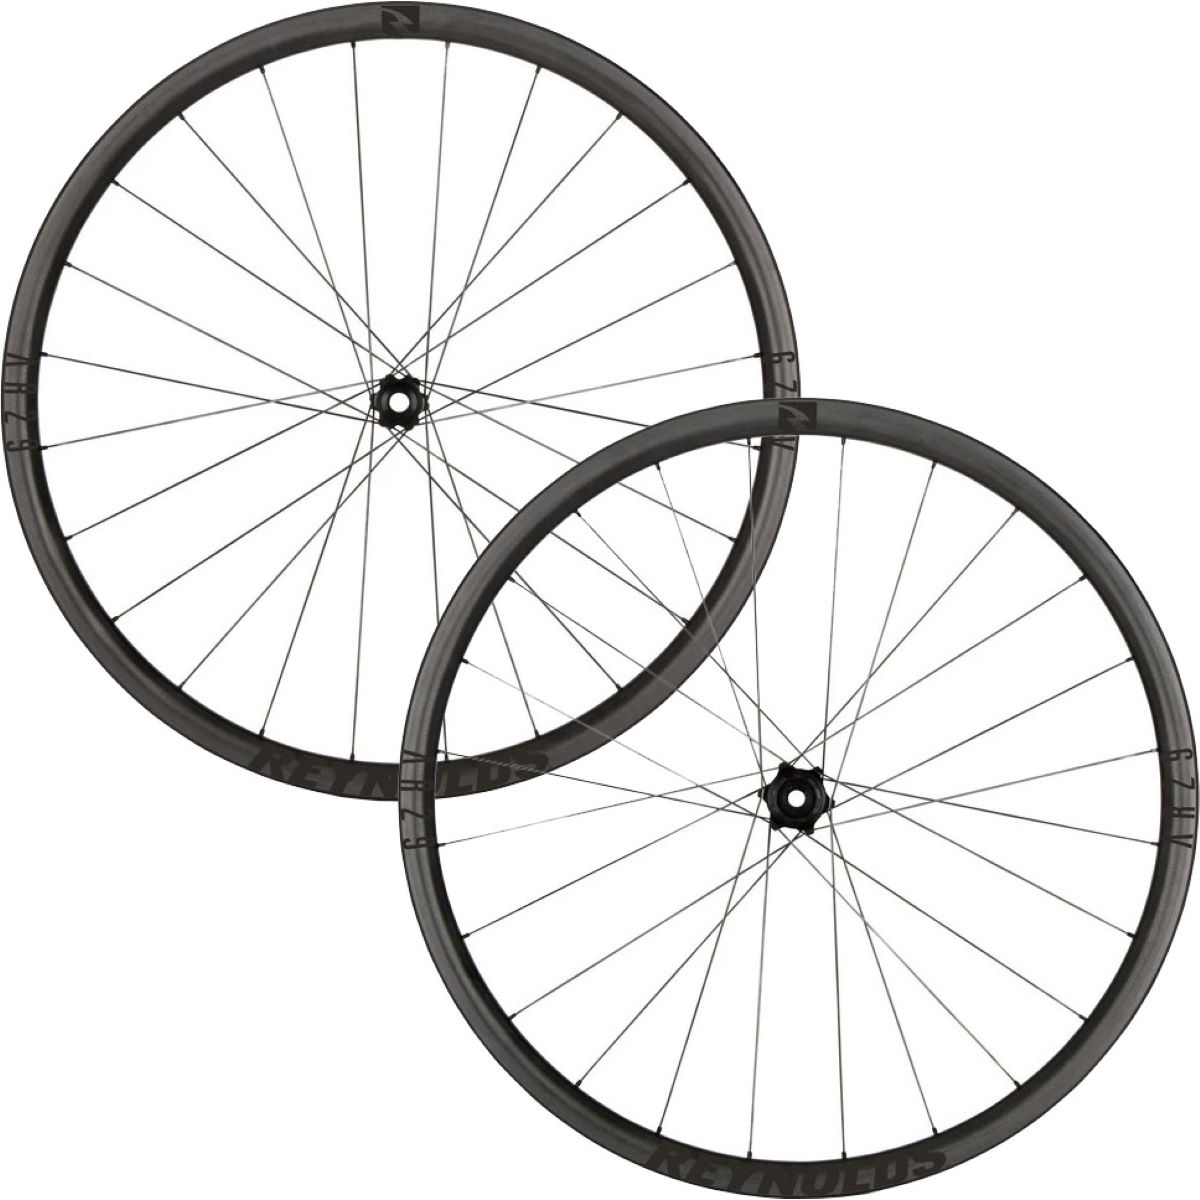 Reynolds Reynolds AR 29 Carbon Disc Road Wheelset   Wheel Sets